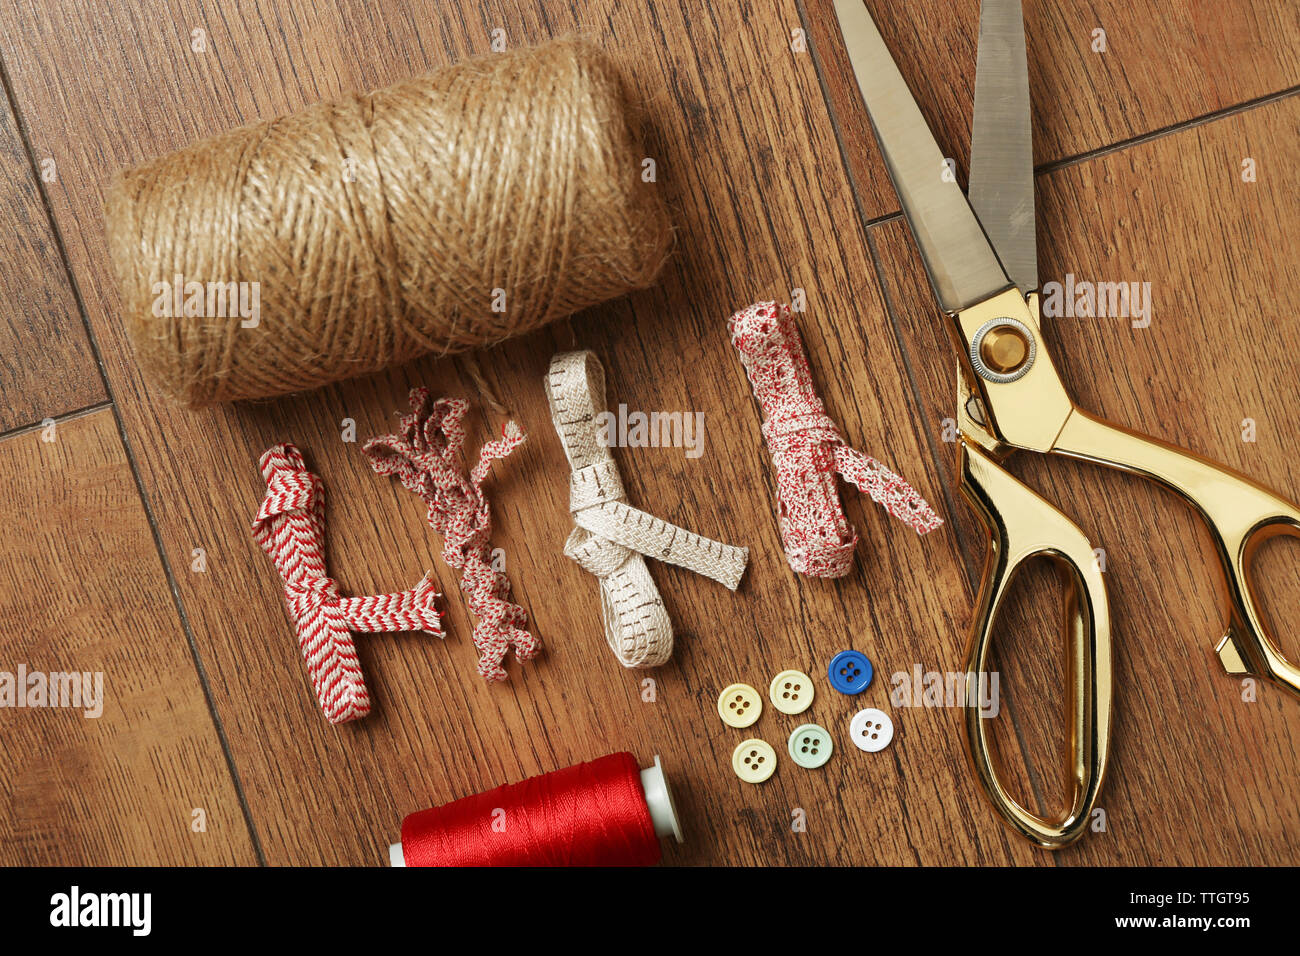 Sewing Creative Accessories On Wooden Table Top View Stock Photo Alamy